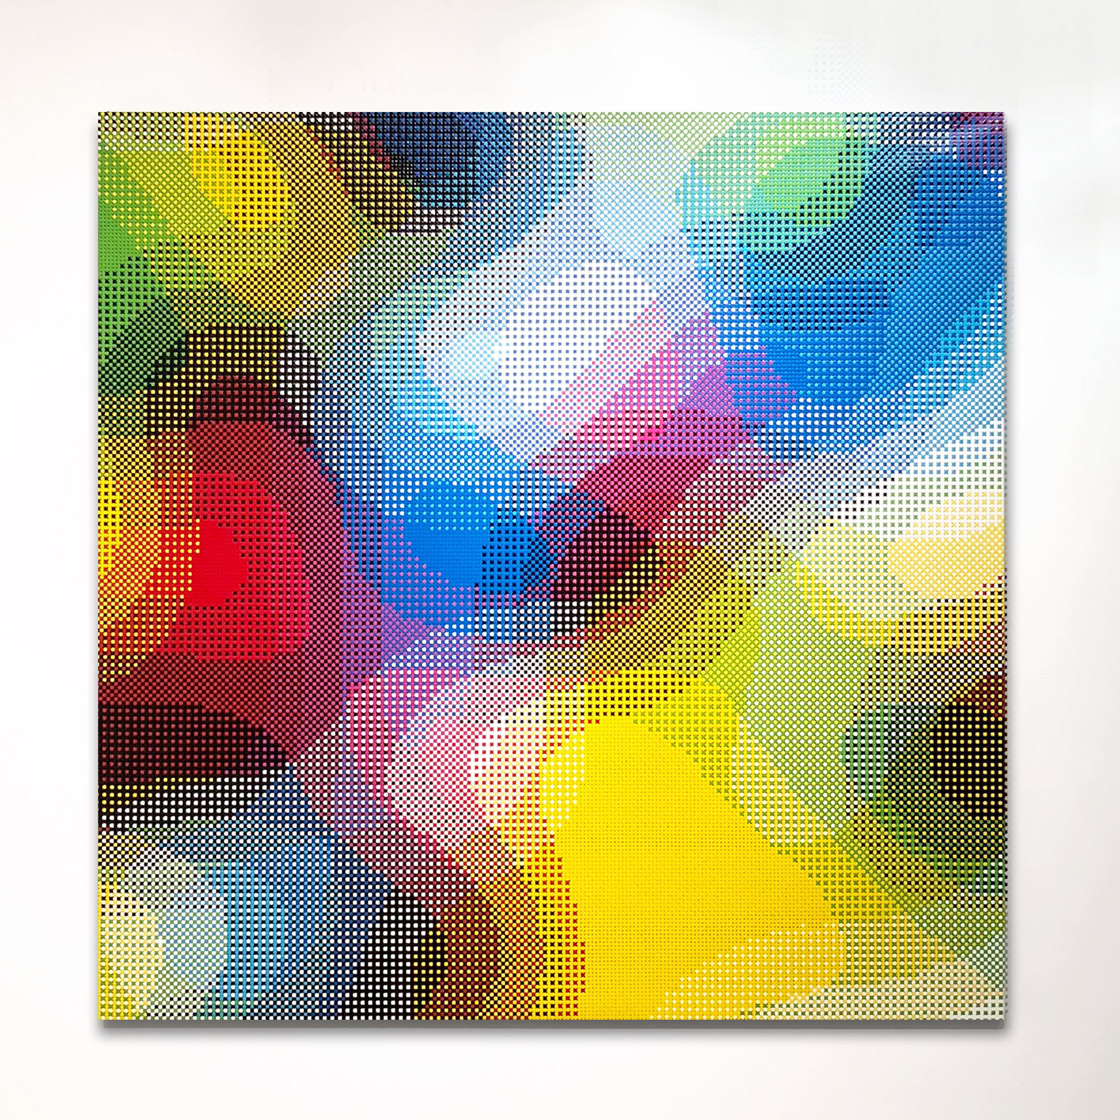 William Betts, Threshold, Color SpaceXXV, 60x60, 2017